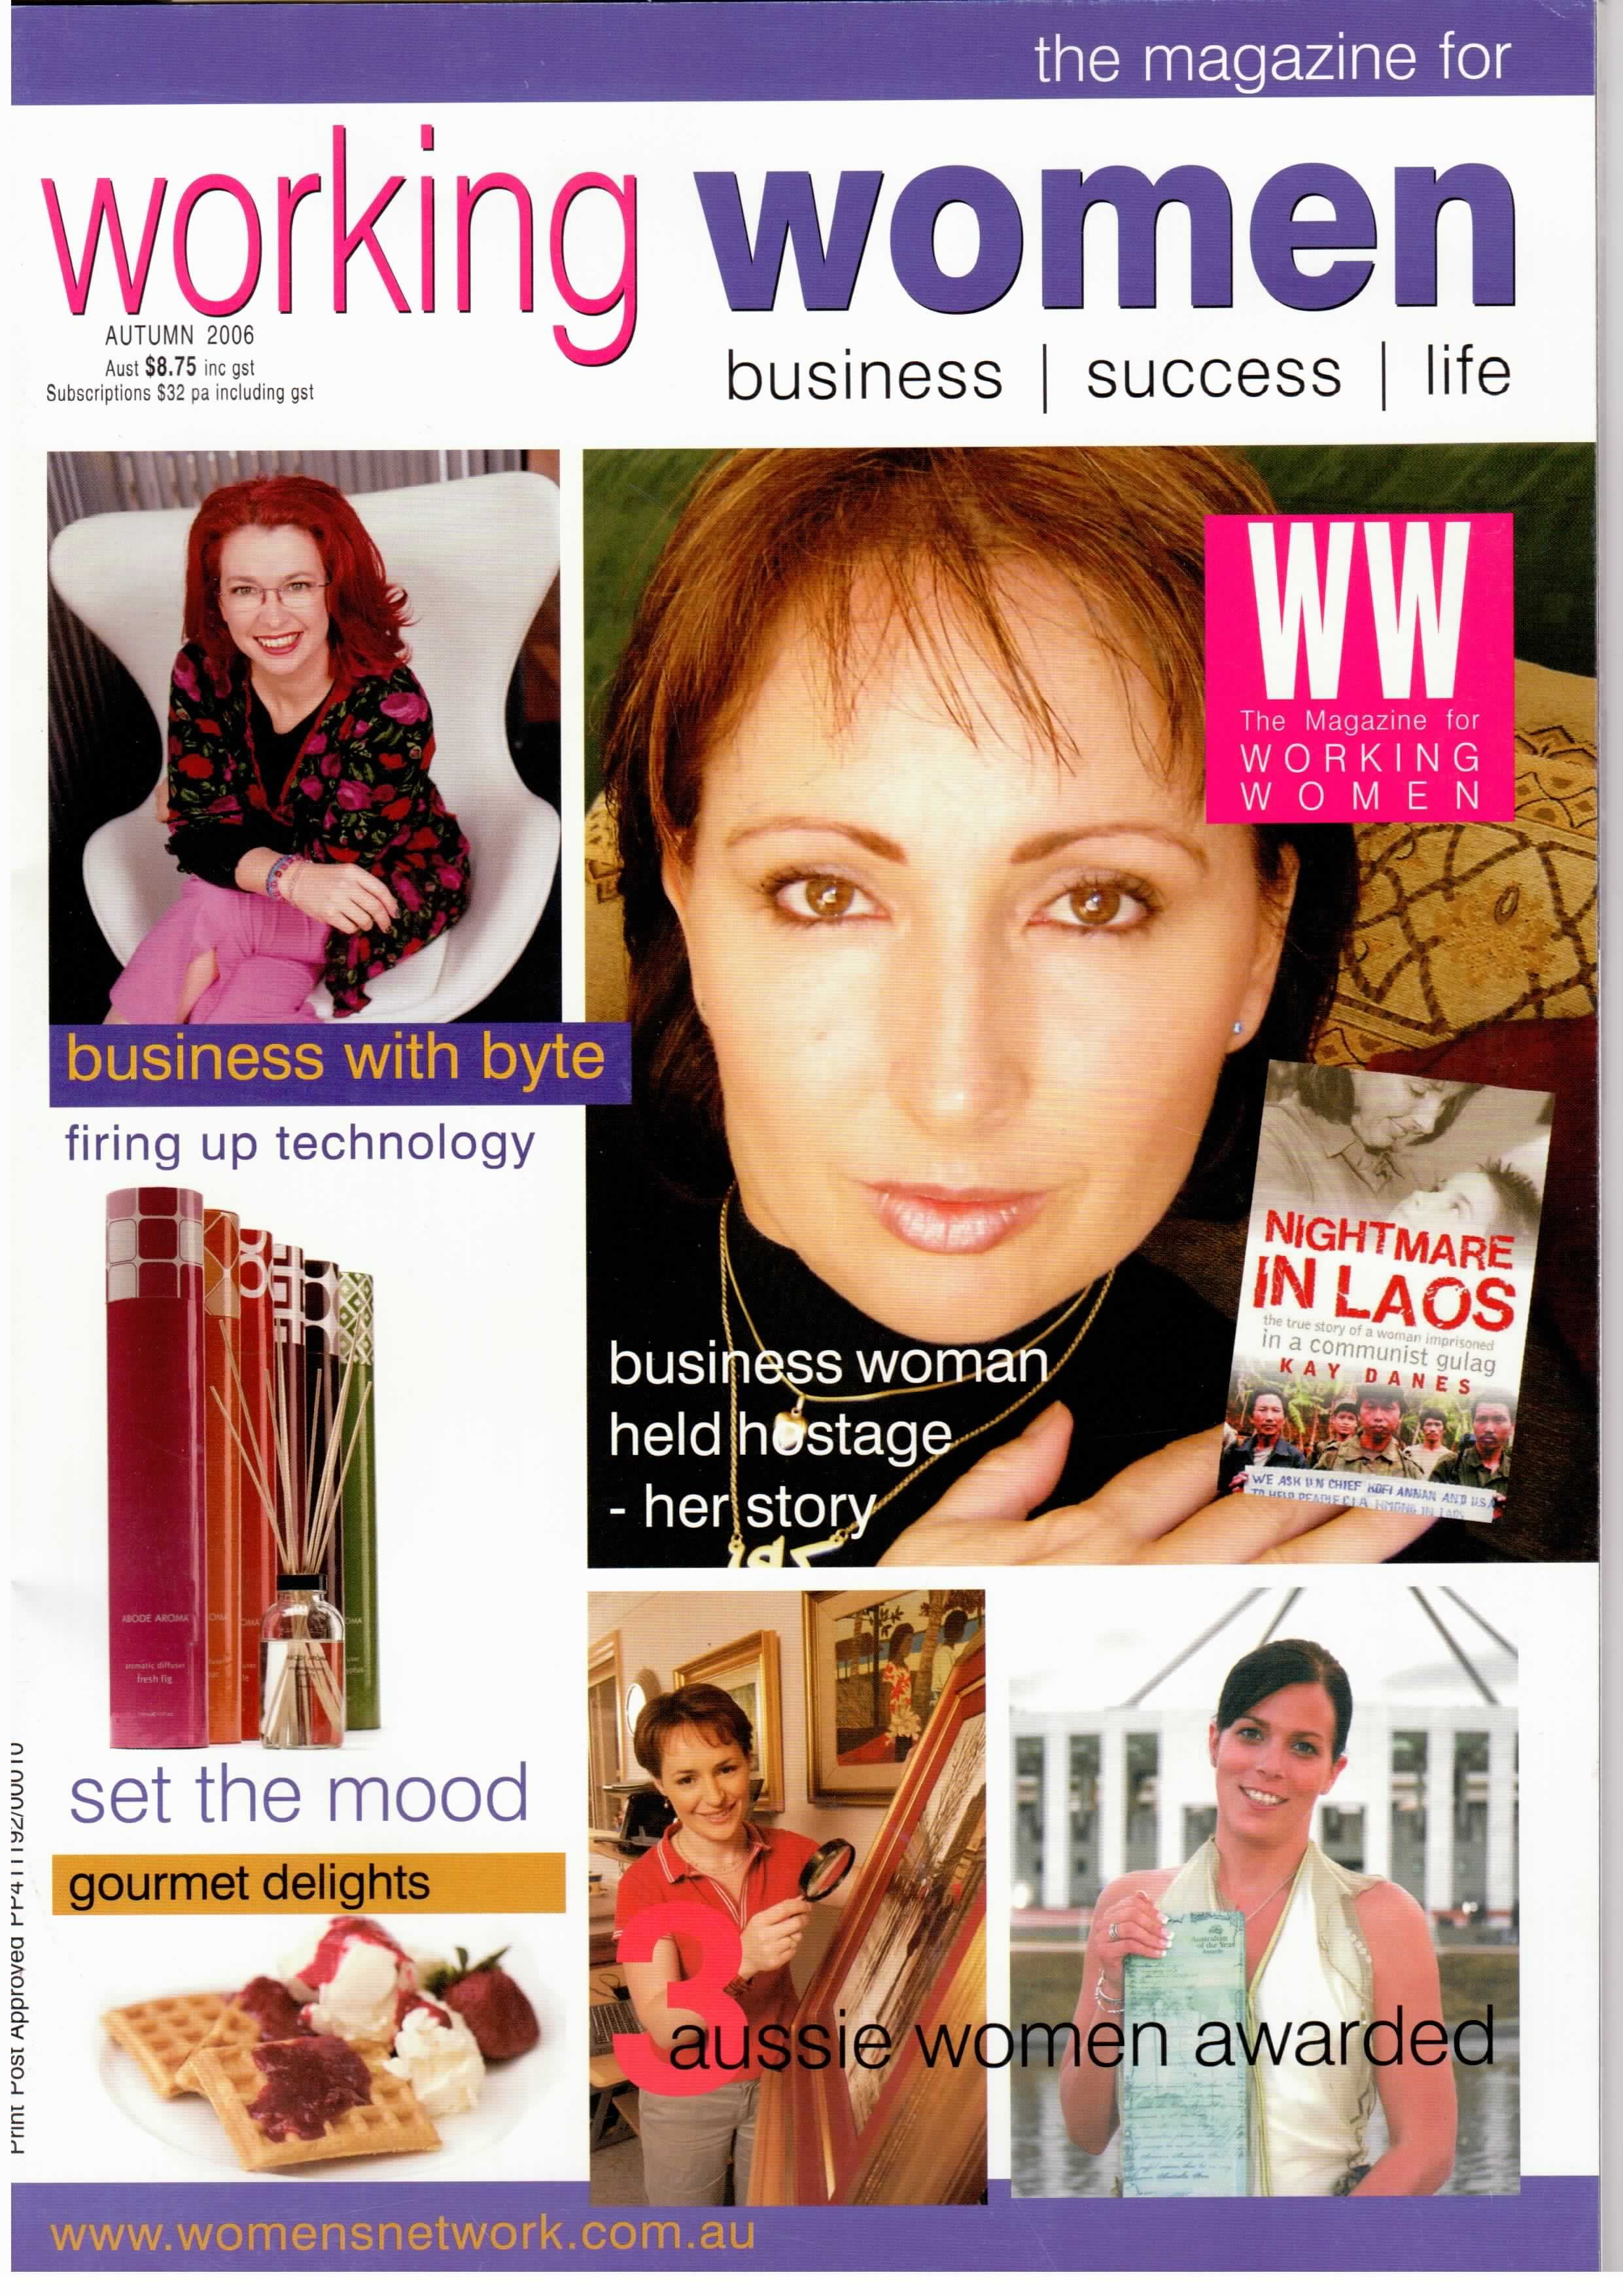 Working women magazine cover automn 2006